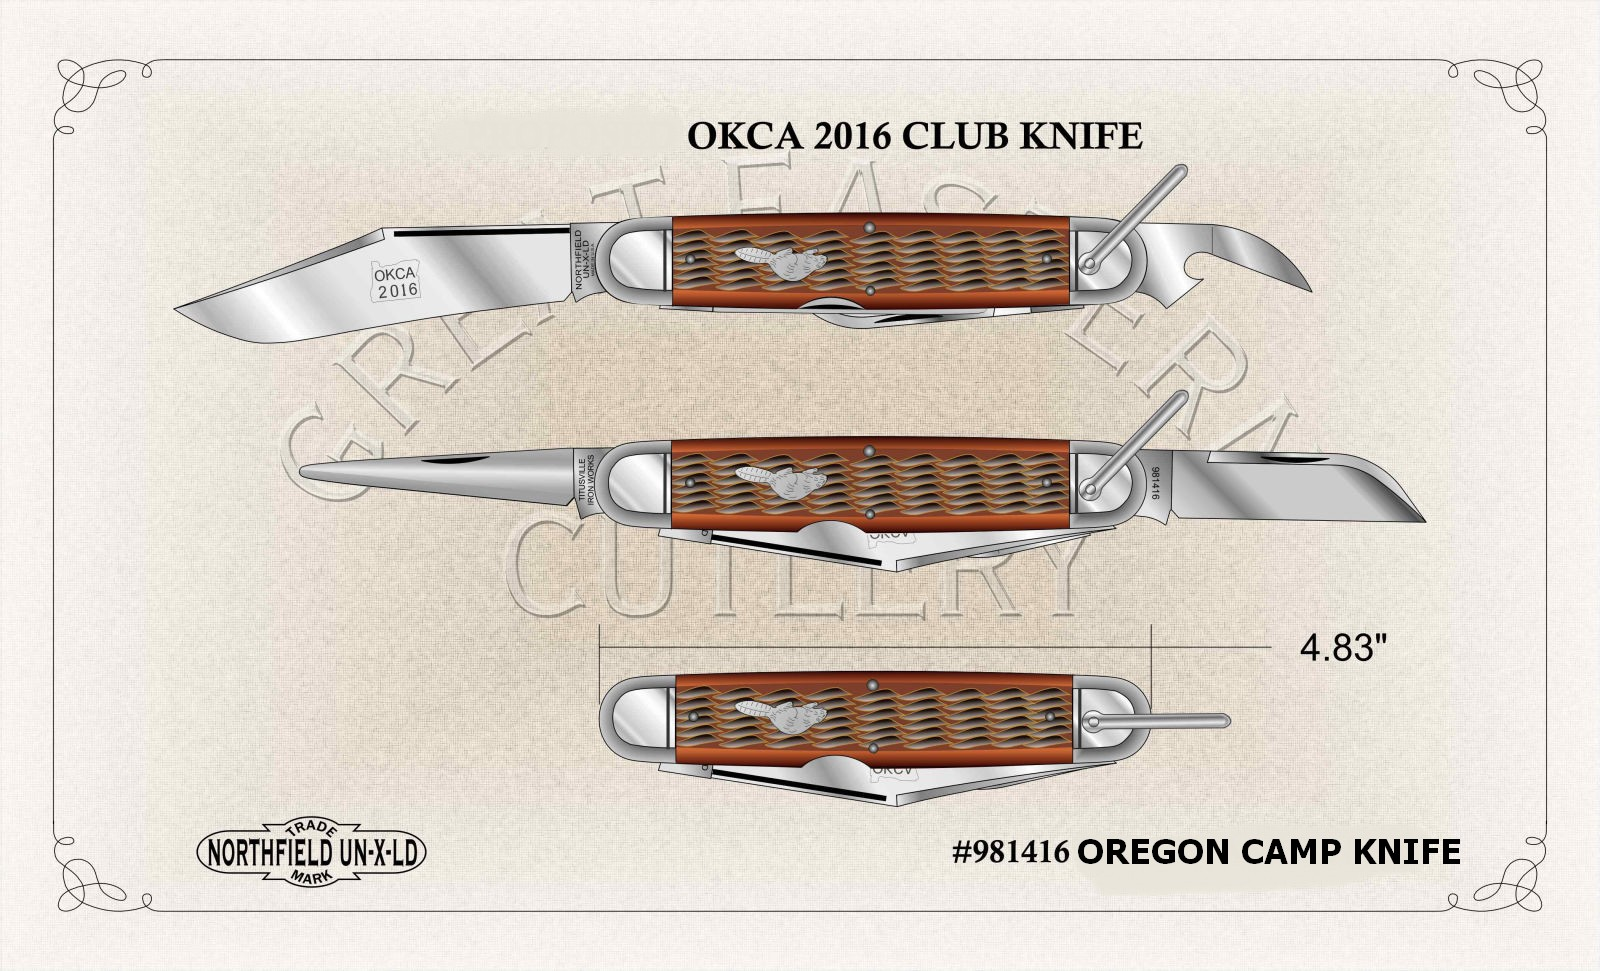 2016 Oregon Camp Knife